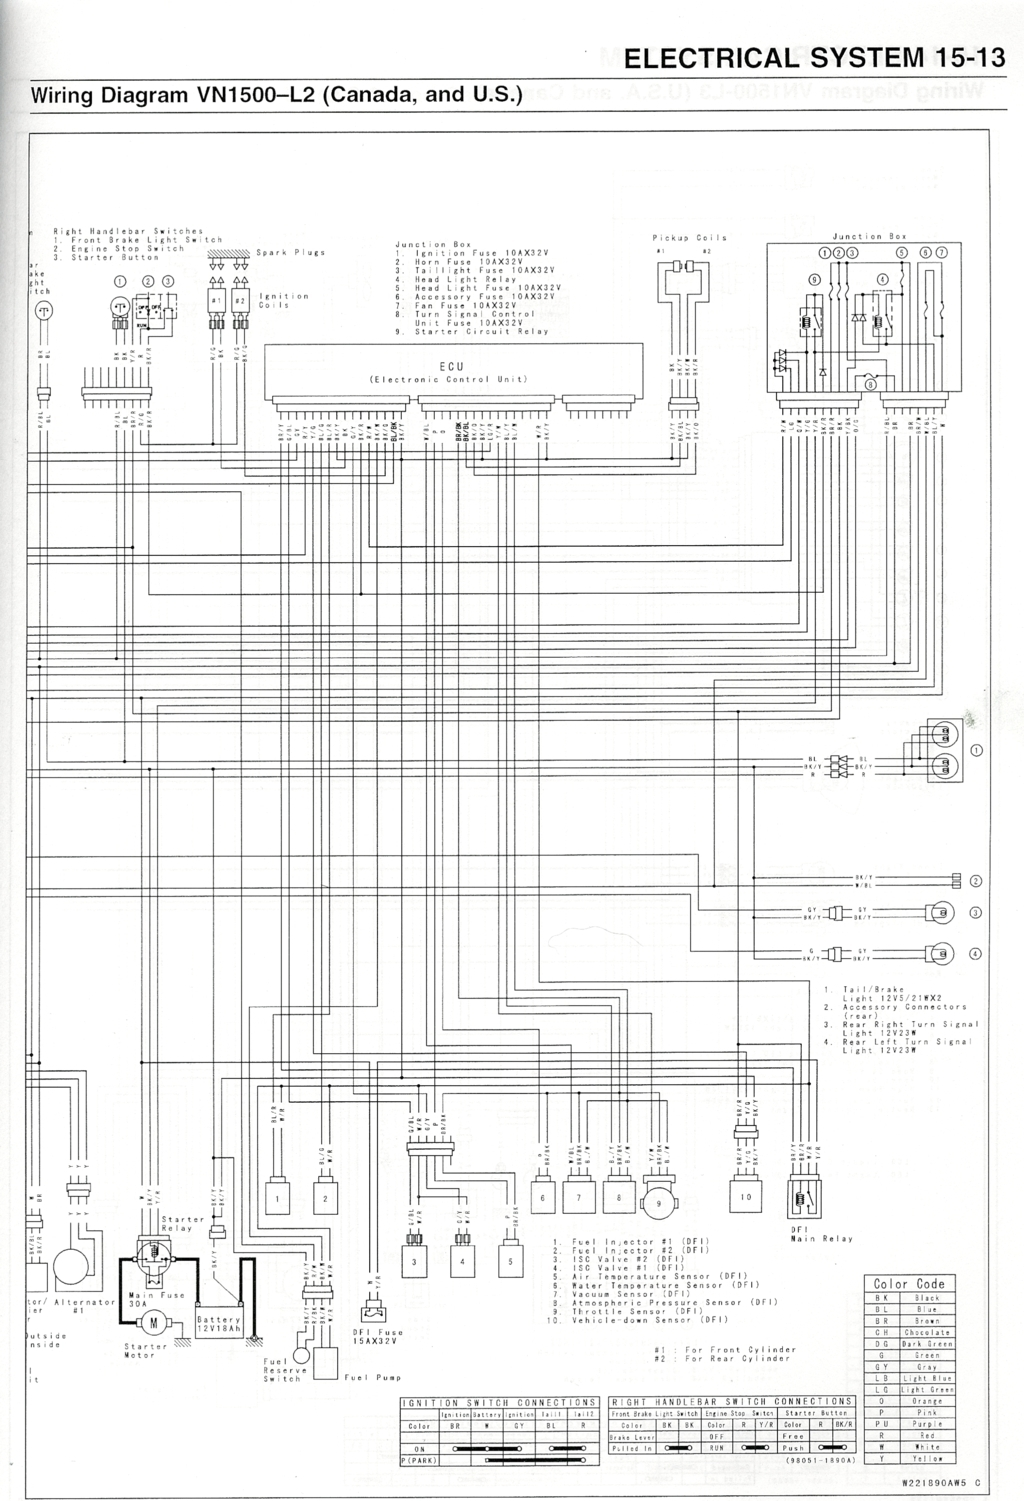 nomad_wiring_diagram_p2 vulcan wiring diagrams gadget's fixit page  at nearapp.co